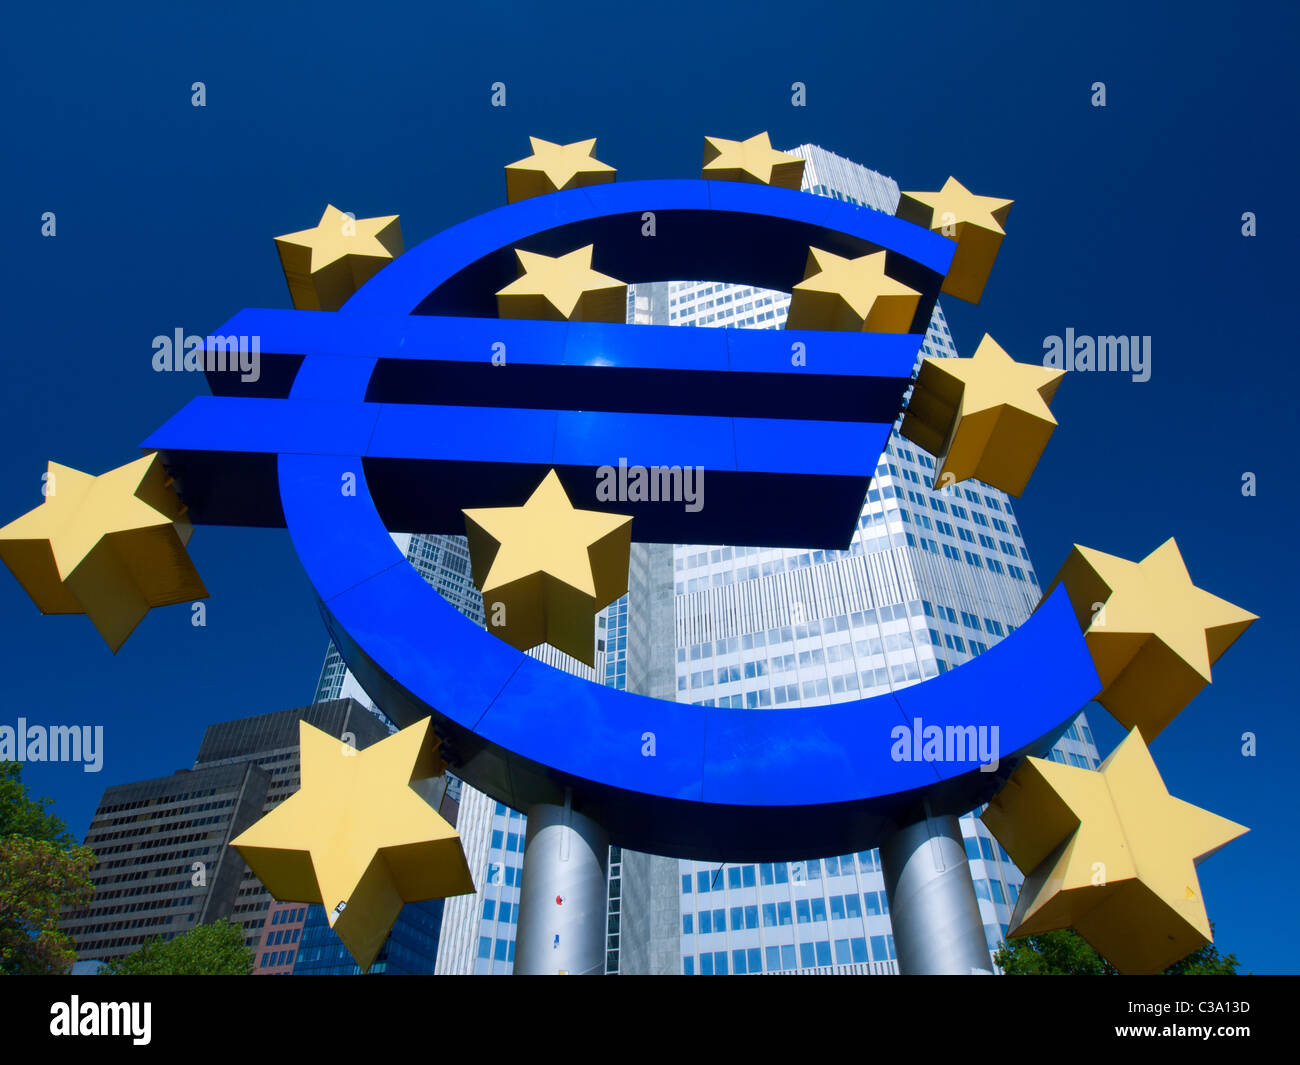 The Euro sign outside the European Central Bank (ECB) in Frankfurt am Main Hessen Germany - Stock Image